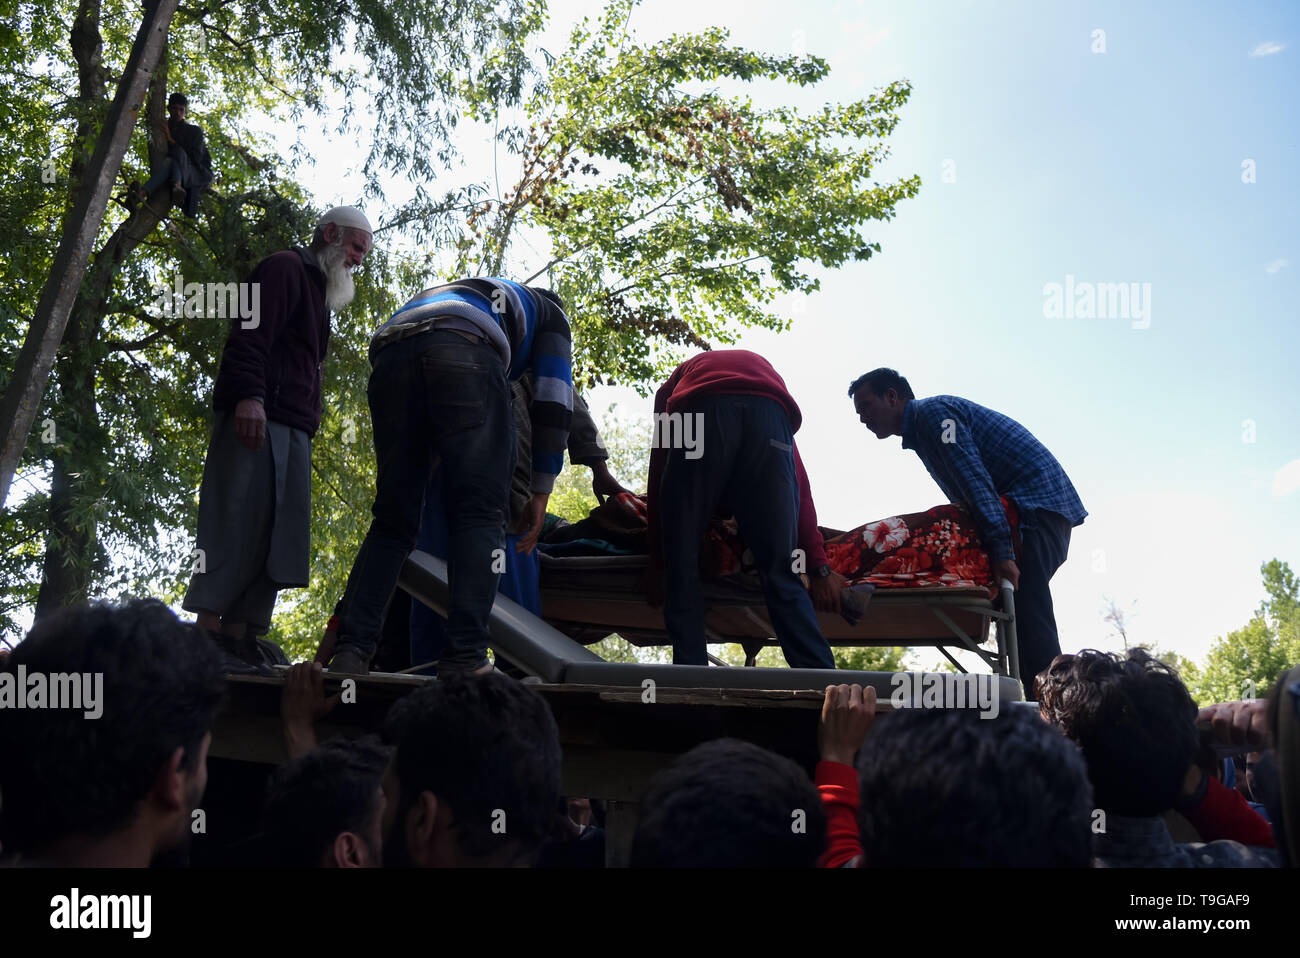 (EDITORS NOTE: Image depicts death) Kashmiri villagers are seen carrying dead body of the Kashmiri Rebel Showkat Ahmed during his funeral ceremony at his residence in Pulwama, South of Srinagar. Thousands attended the funeral ceremony of slain Showkat Ahmed Dar at his residence in Panzgam Pulwama. Showkat was among the three Kashmiri Rebels killed in a gunfight in Pulwama. - Stock Image